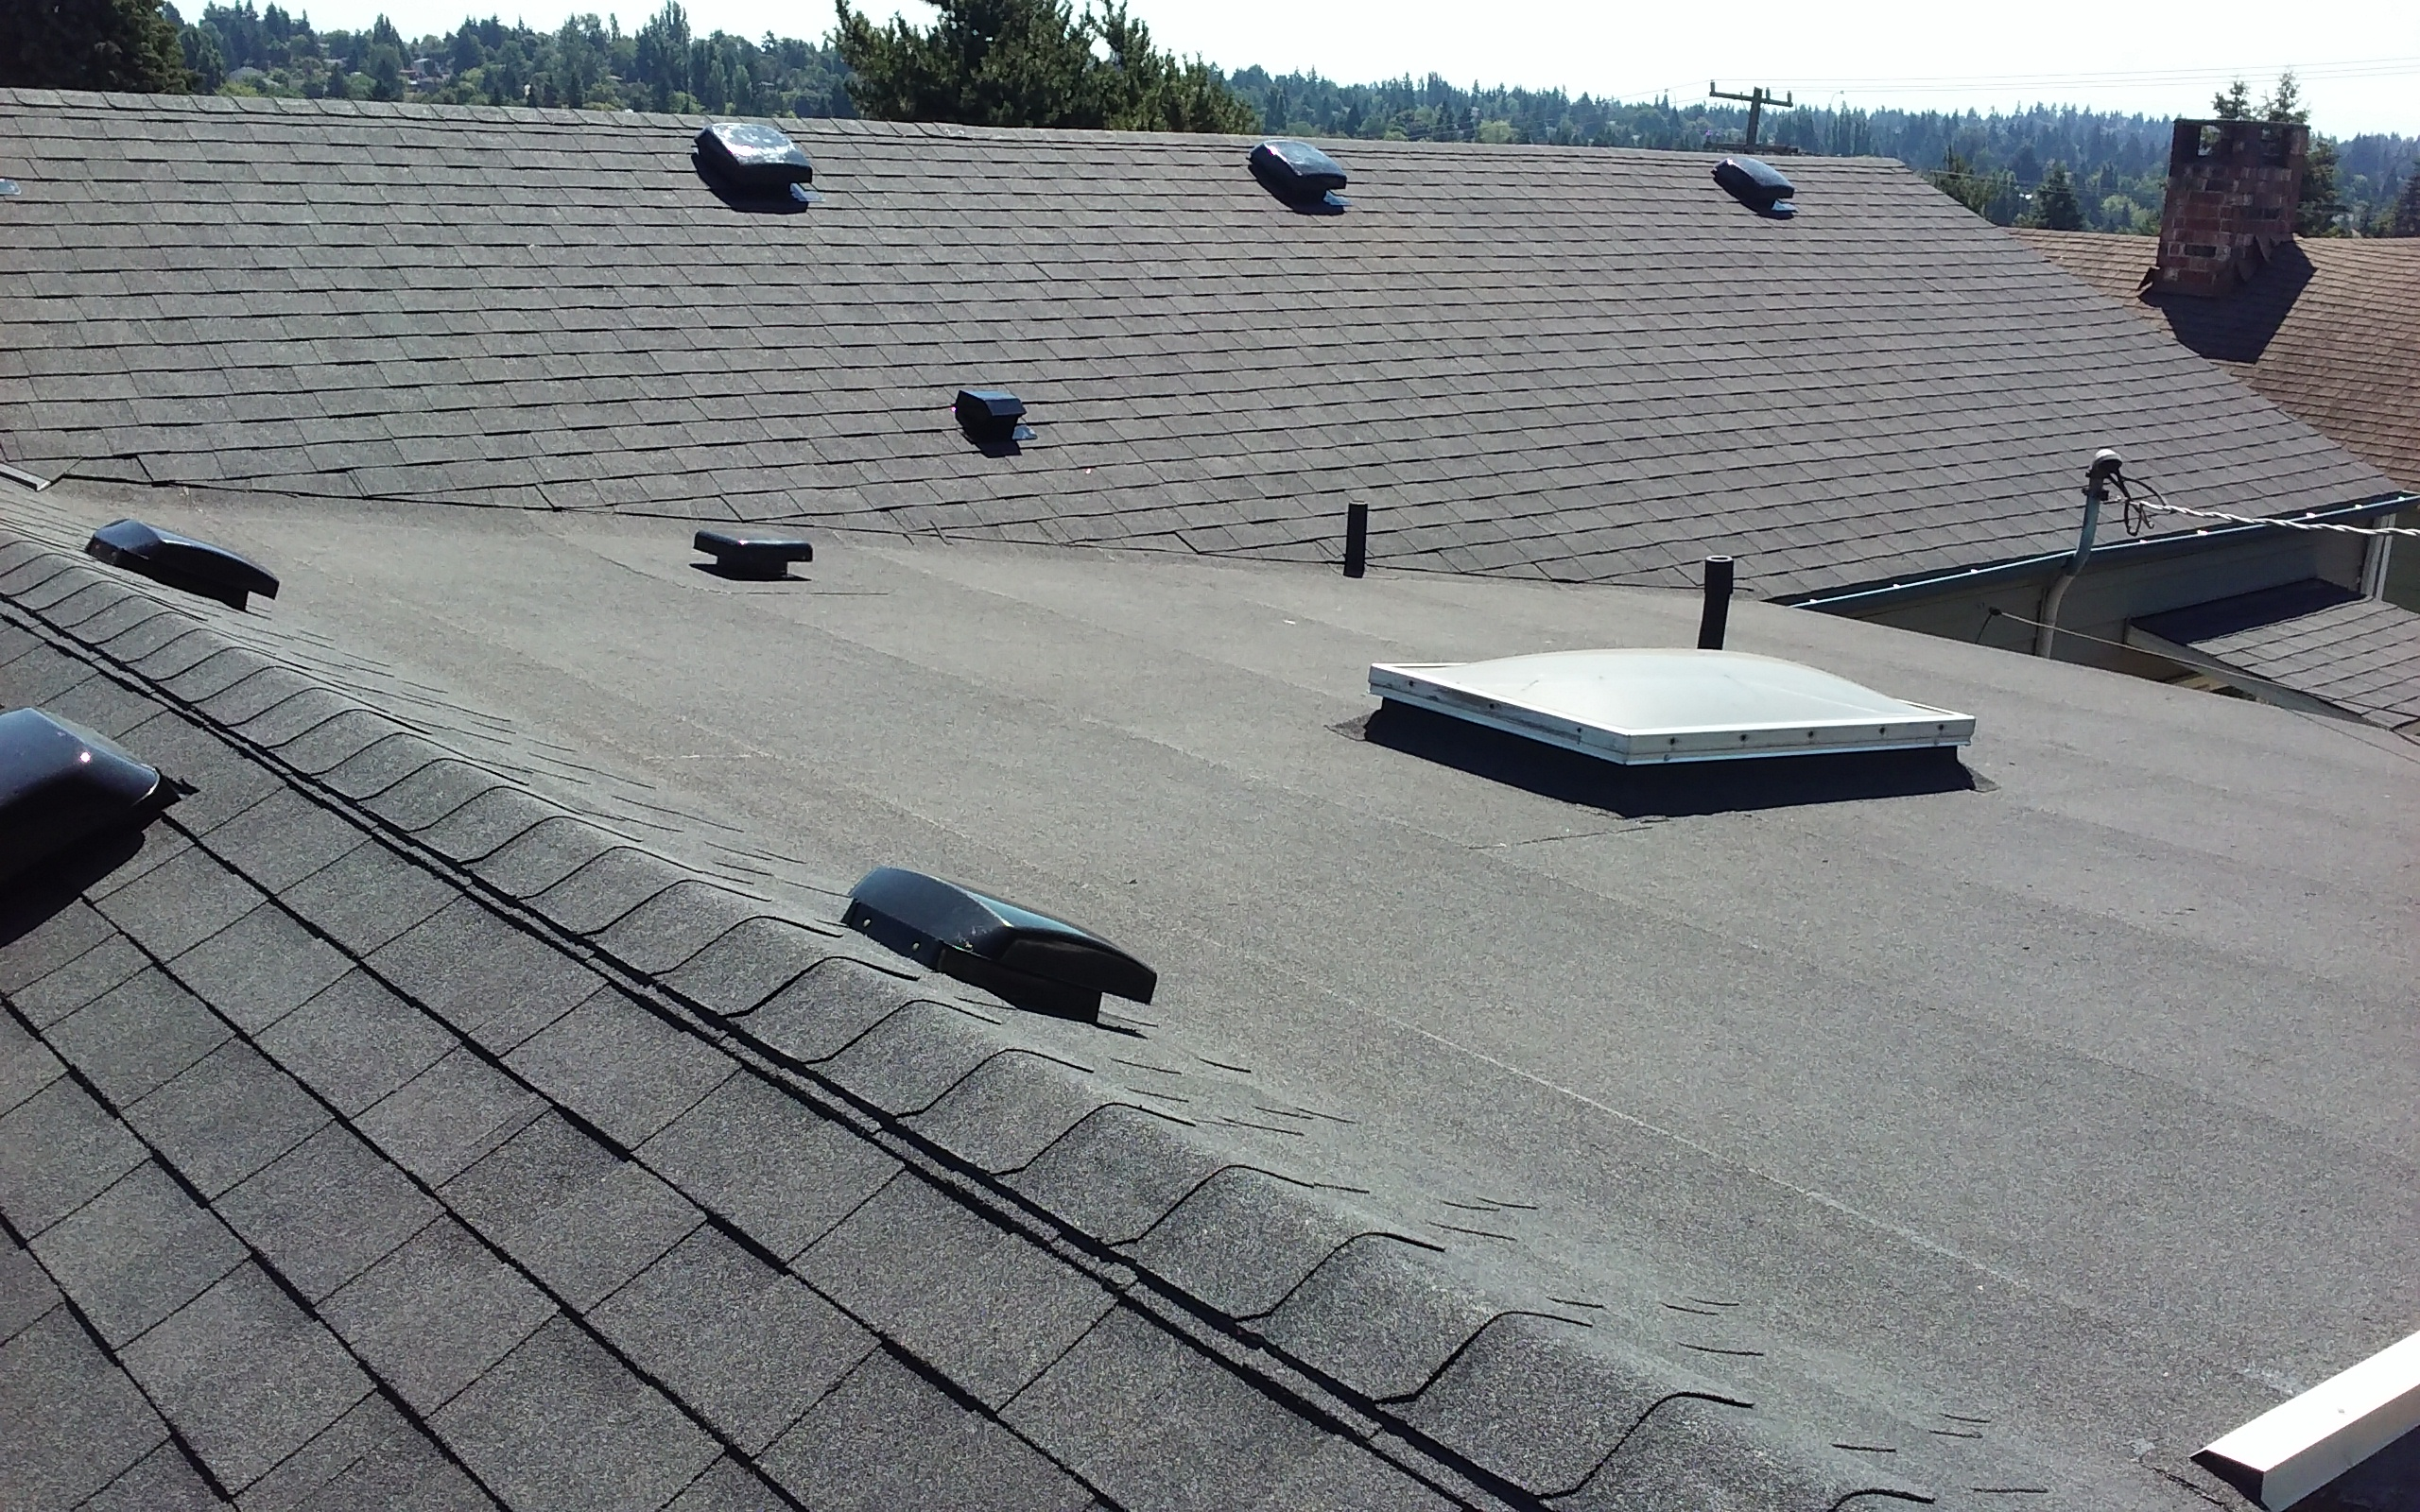 shingle roofing and torchdown roofing were used